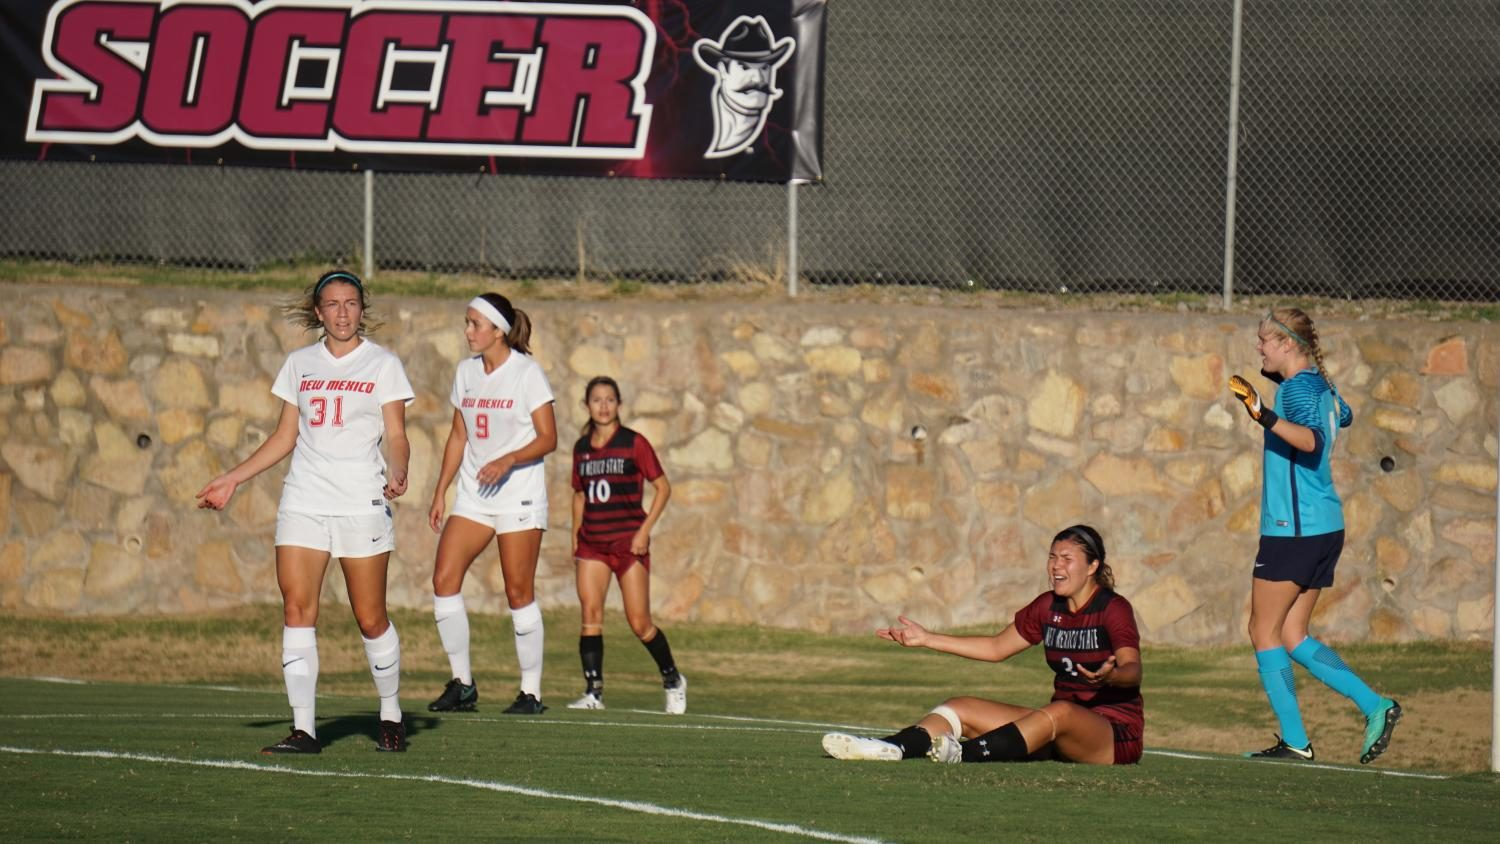 Despite+one+of+the+best+seasons+in+program+history%2C+NMSU+soccer+falls+in+the+first+round+of+the+WAC+tournament.